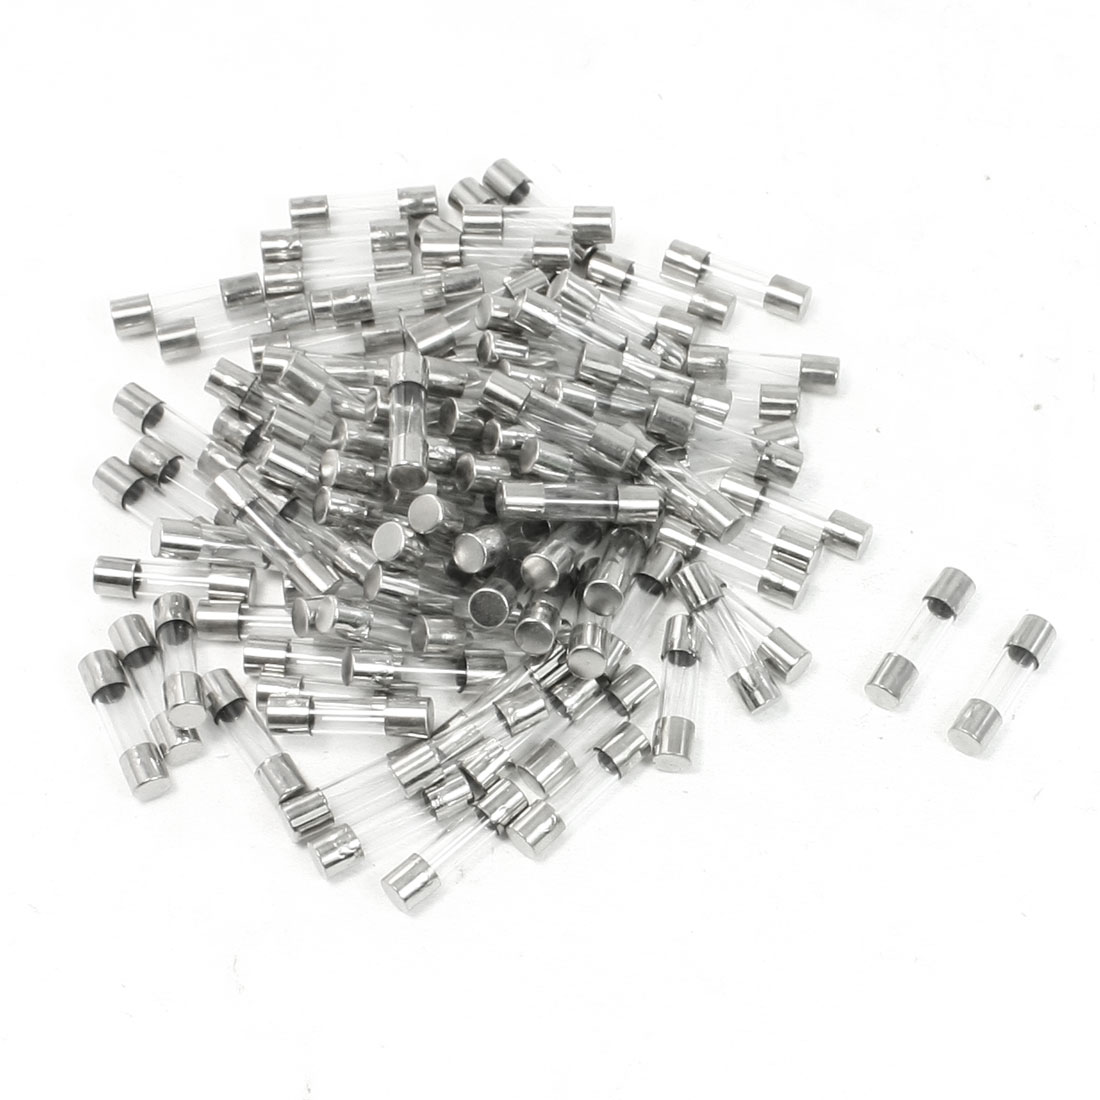 1A 250V Fast Blow Acting Metal Cap Both End 5x20mm Glass Tube Fuses 100 Pcs